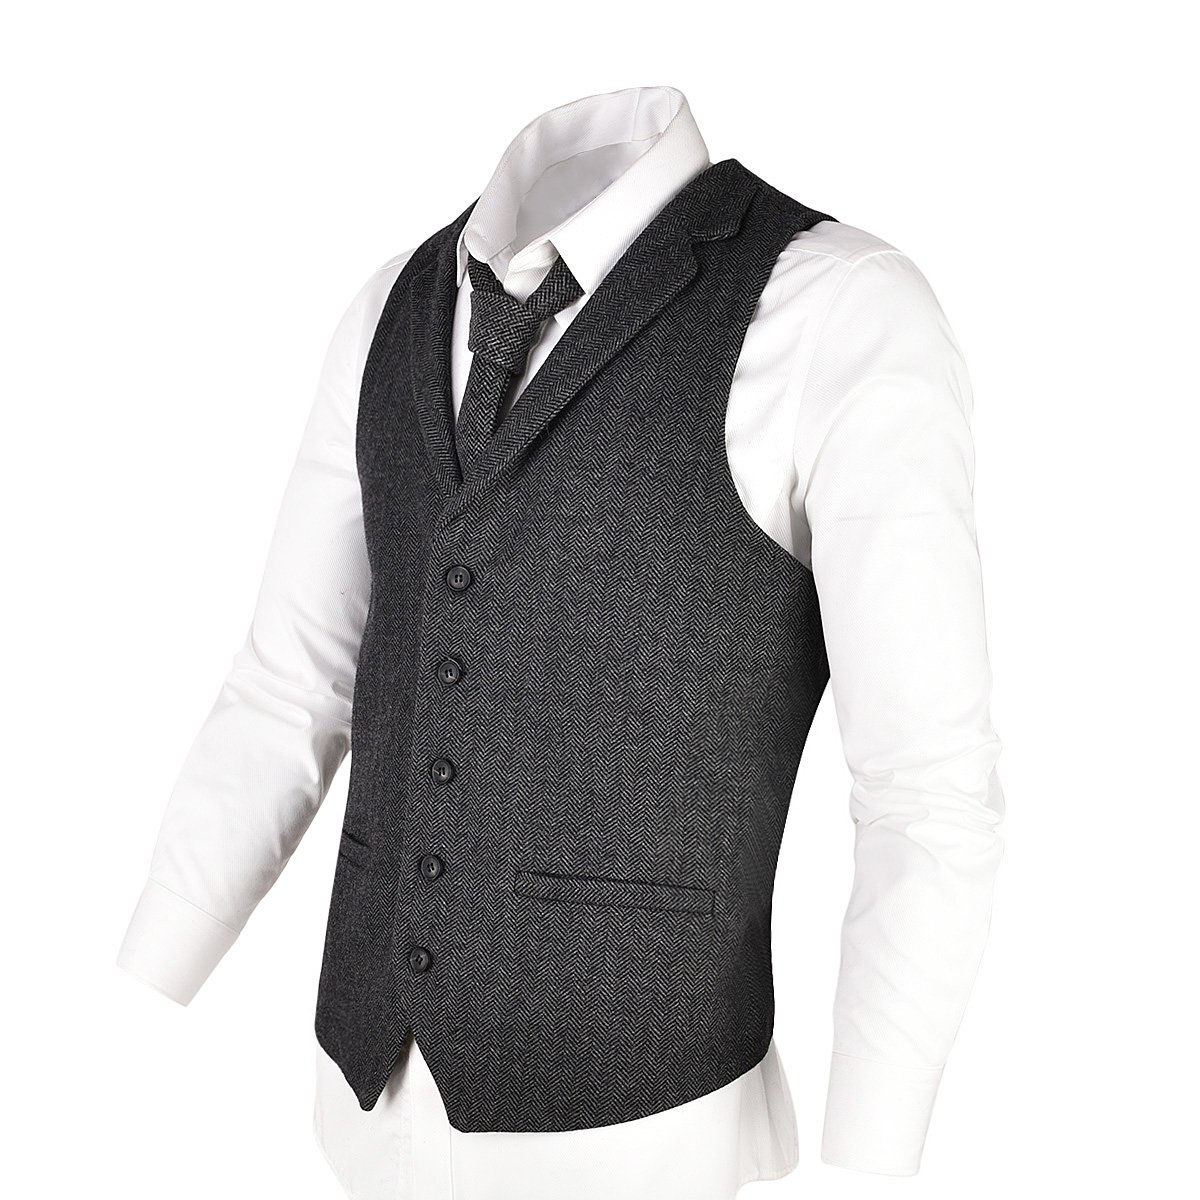 VOBOOM Mens Herringbone Tailored Collar Waistcoat Fullback Wool Tweed Suit Vest (Dark Grey, L)